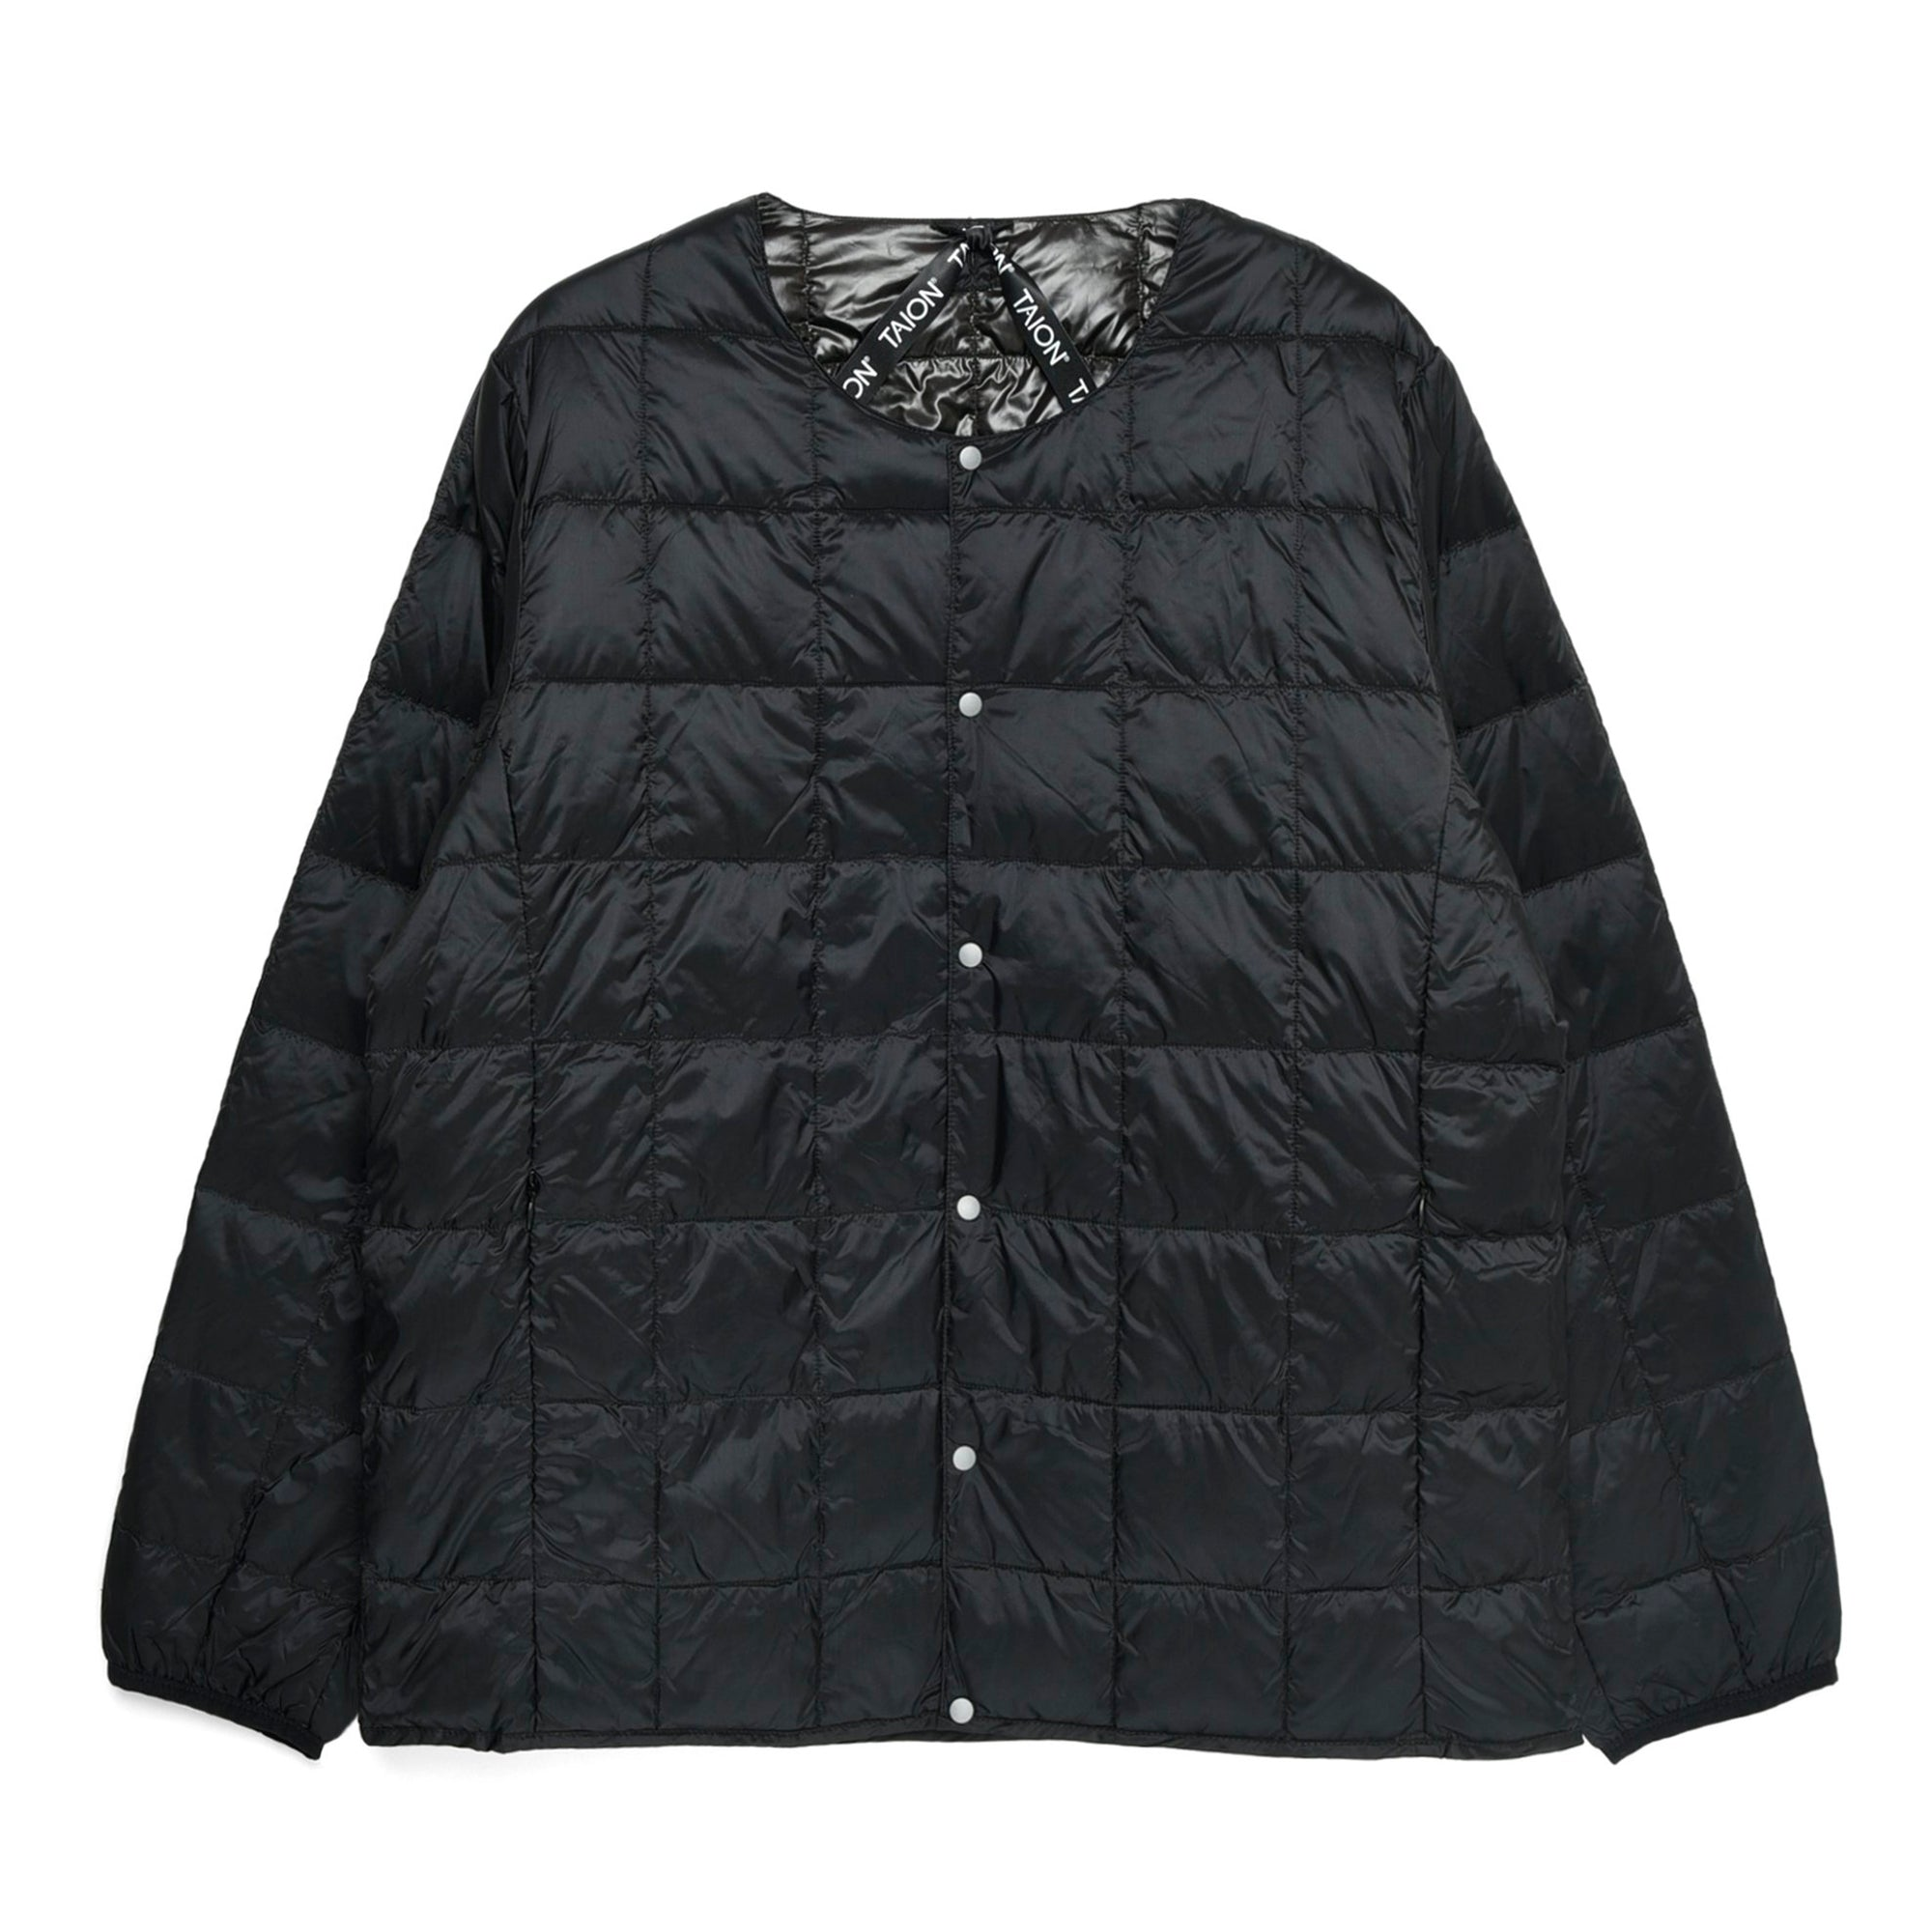 Taion Crew Neck Button Down Jacket: Black - The Union Project